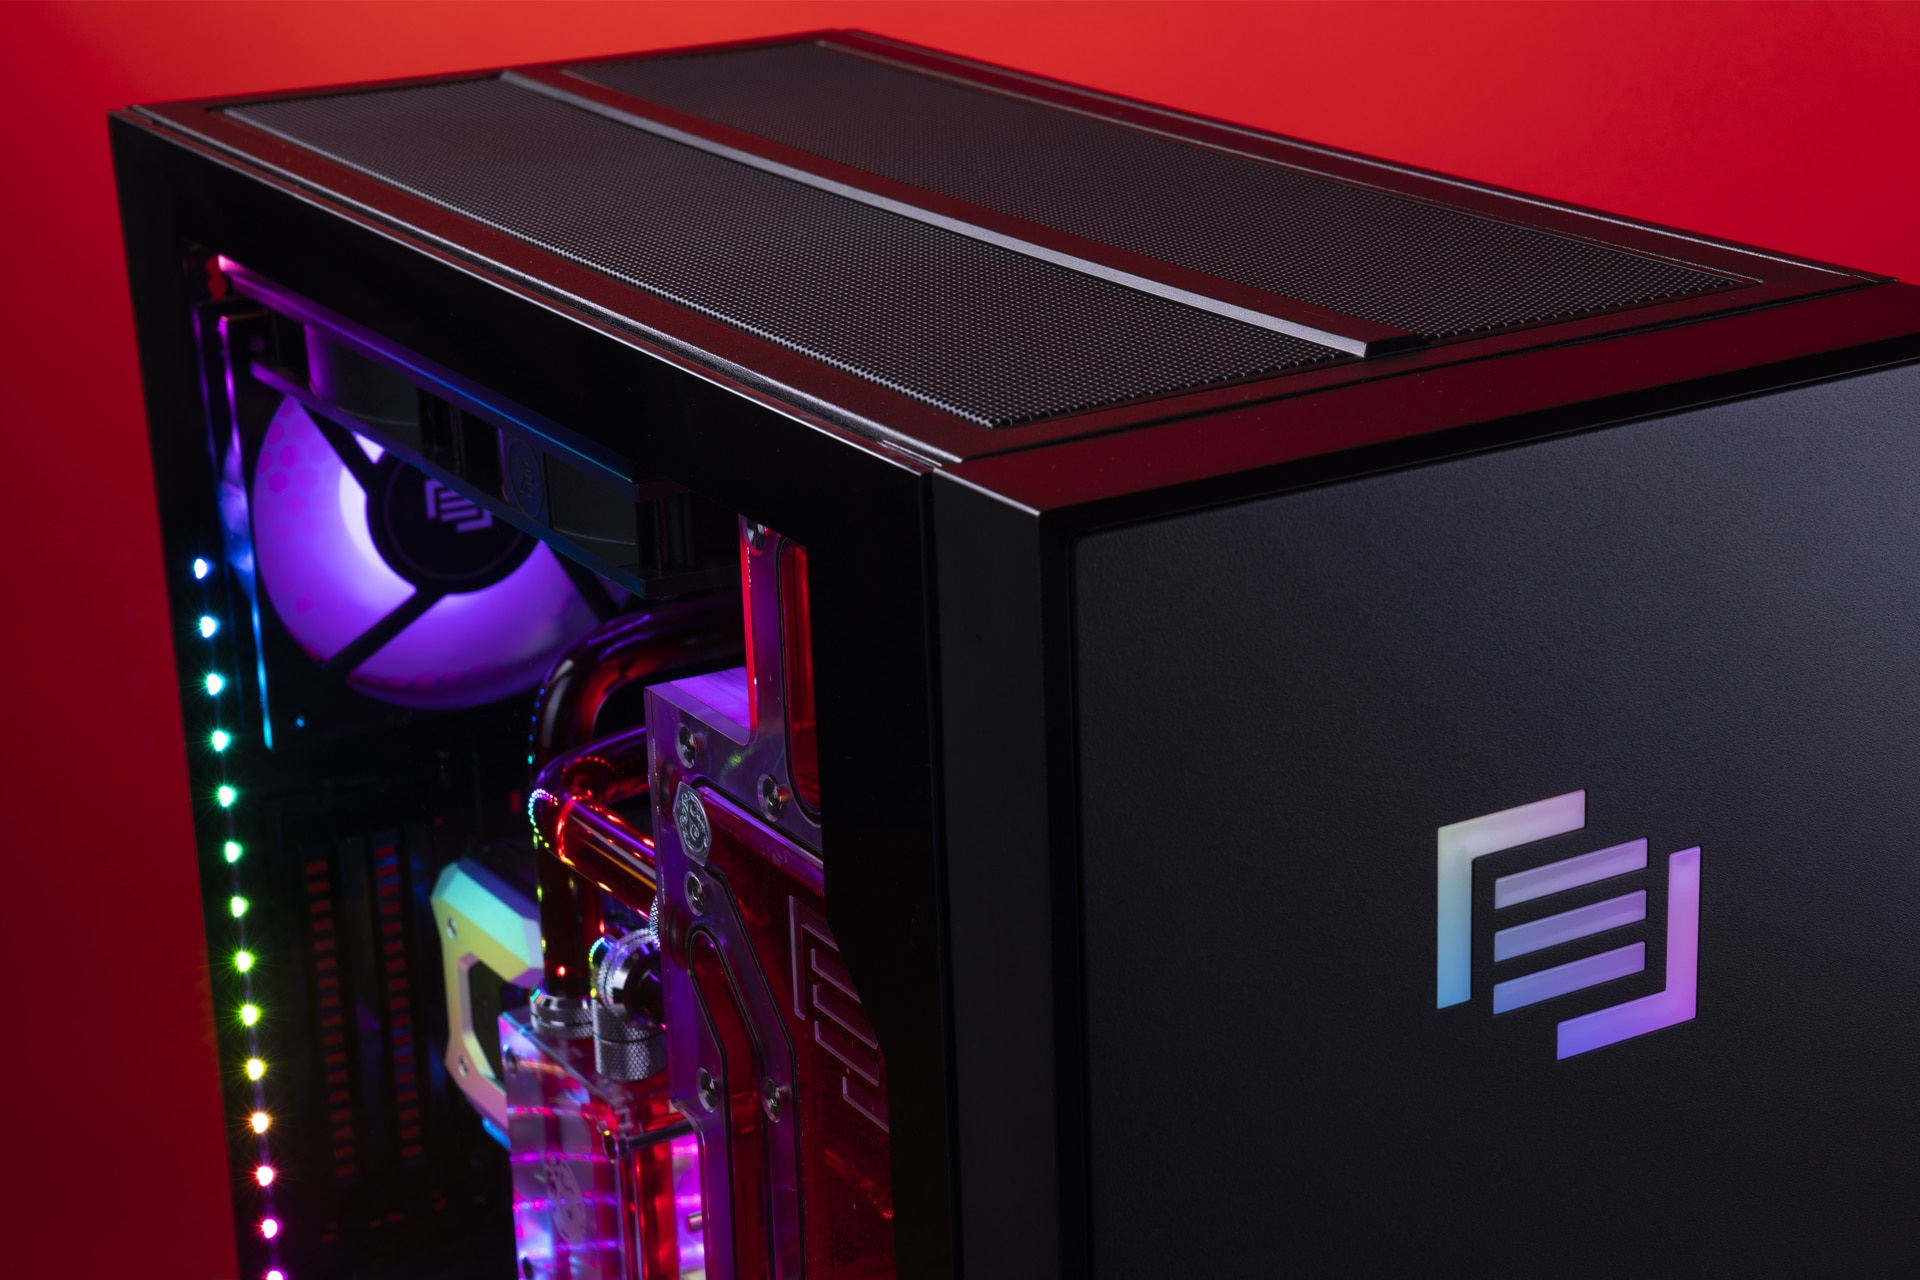 One of The Top Gaming PCs of 2020